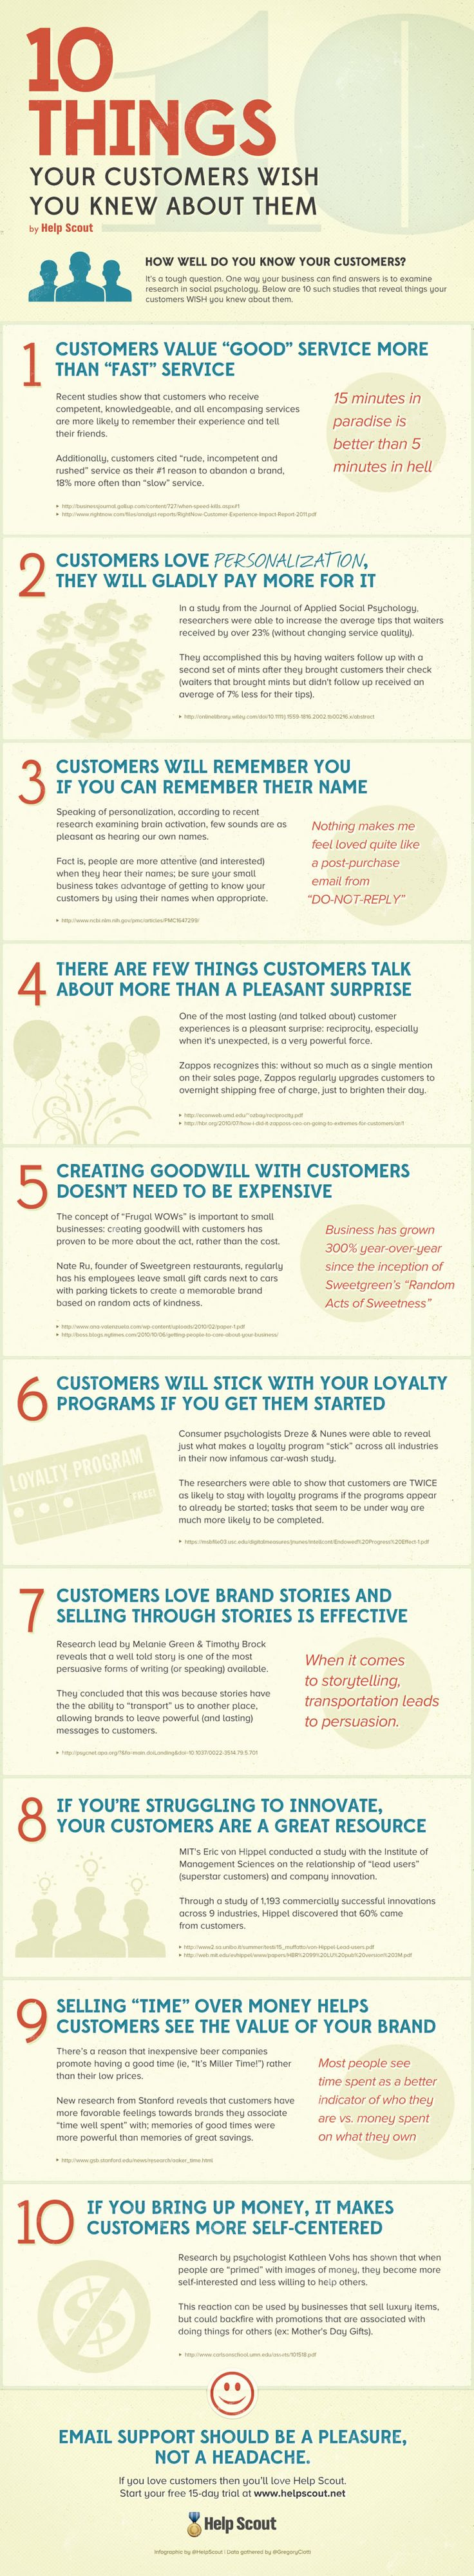 10 things your customers wish you knew about them.